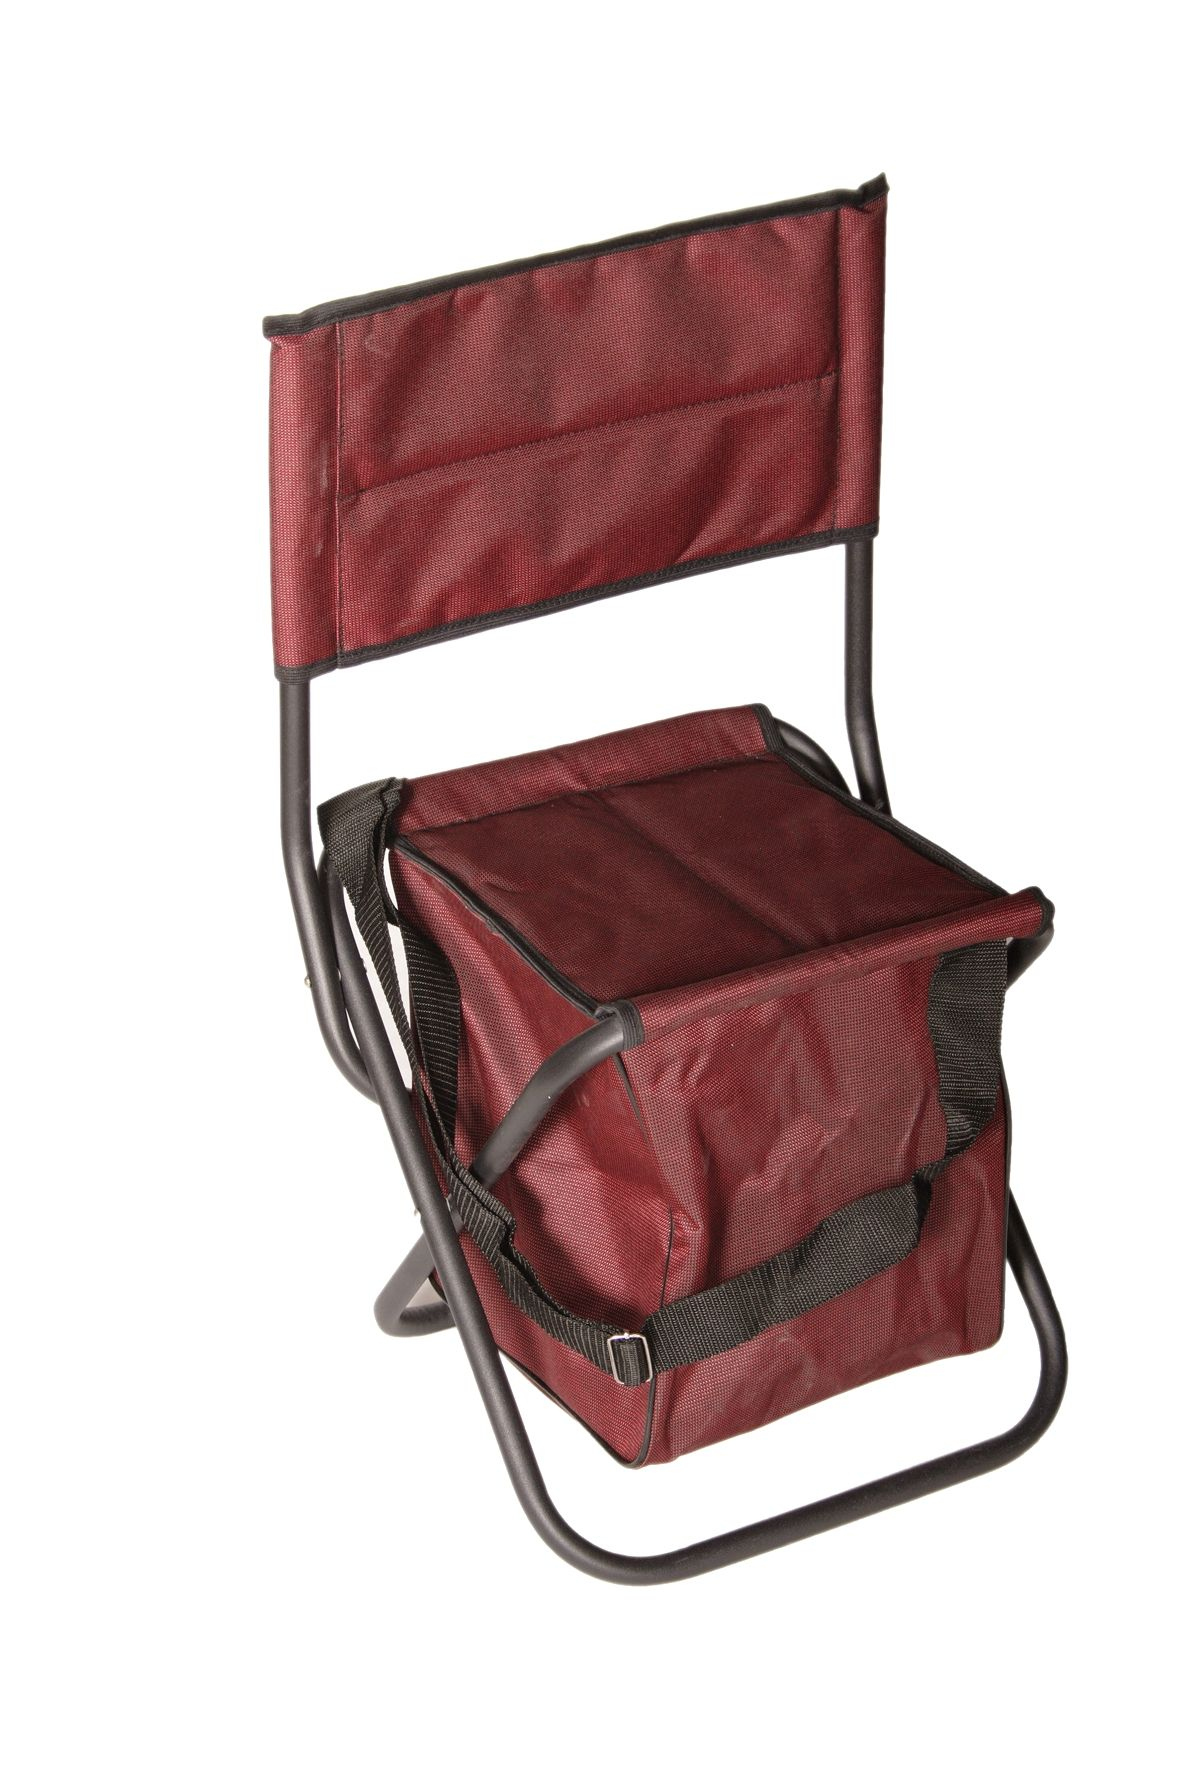 Tourist steel chair with backrest, legs closed; with bag